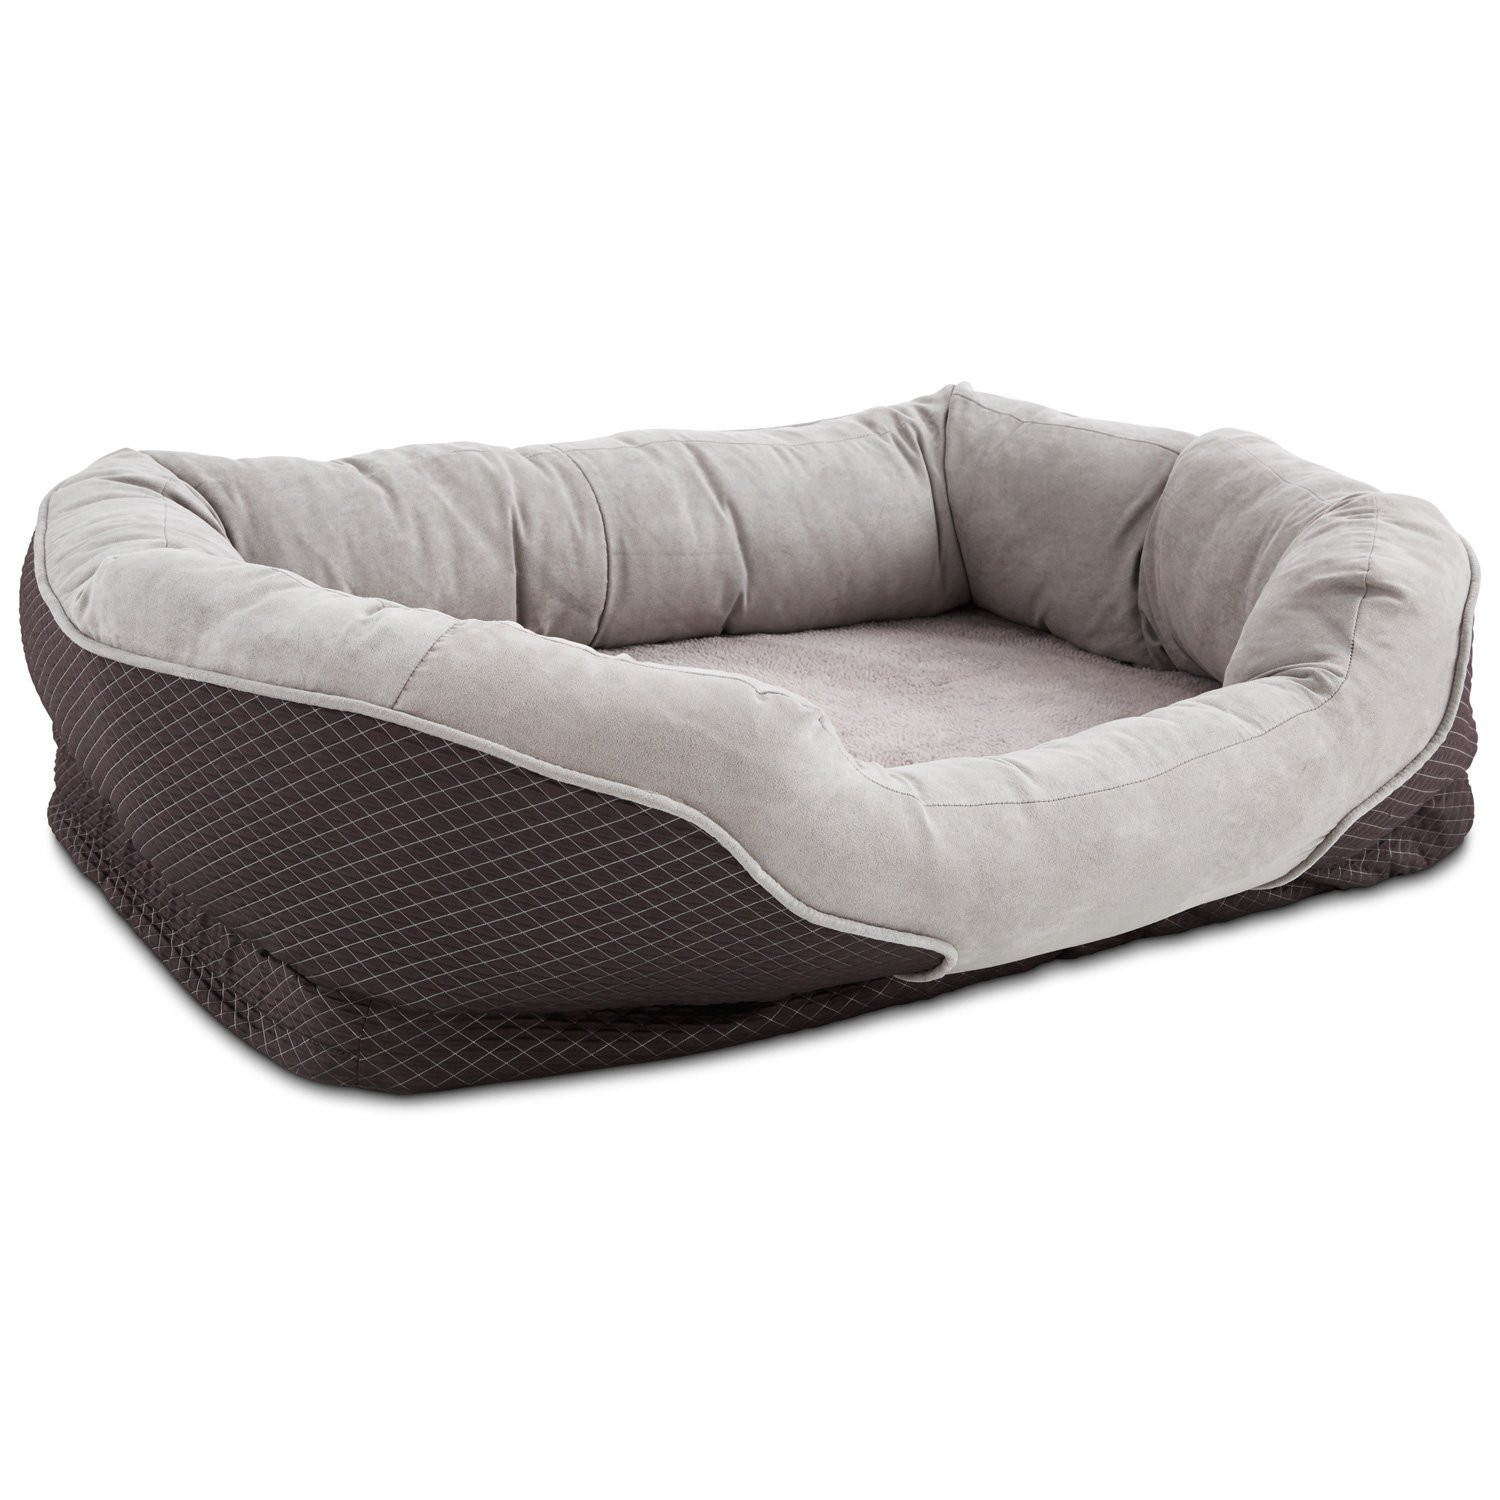 Pet Shop Dog Beds